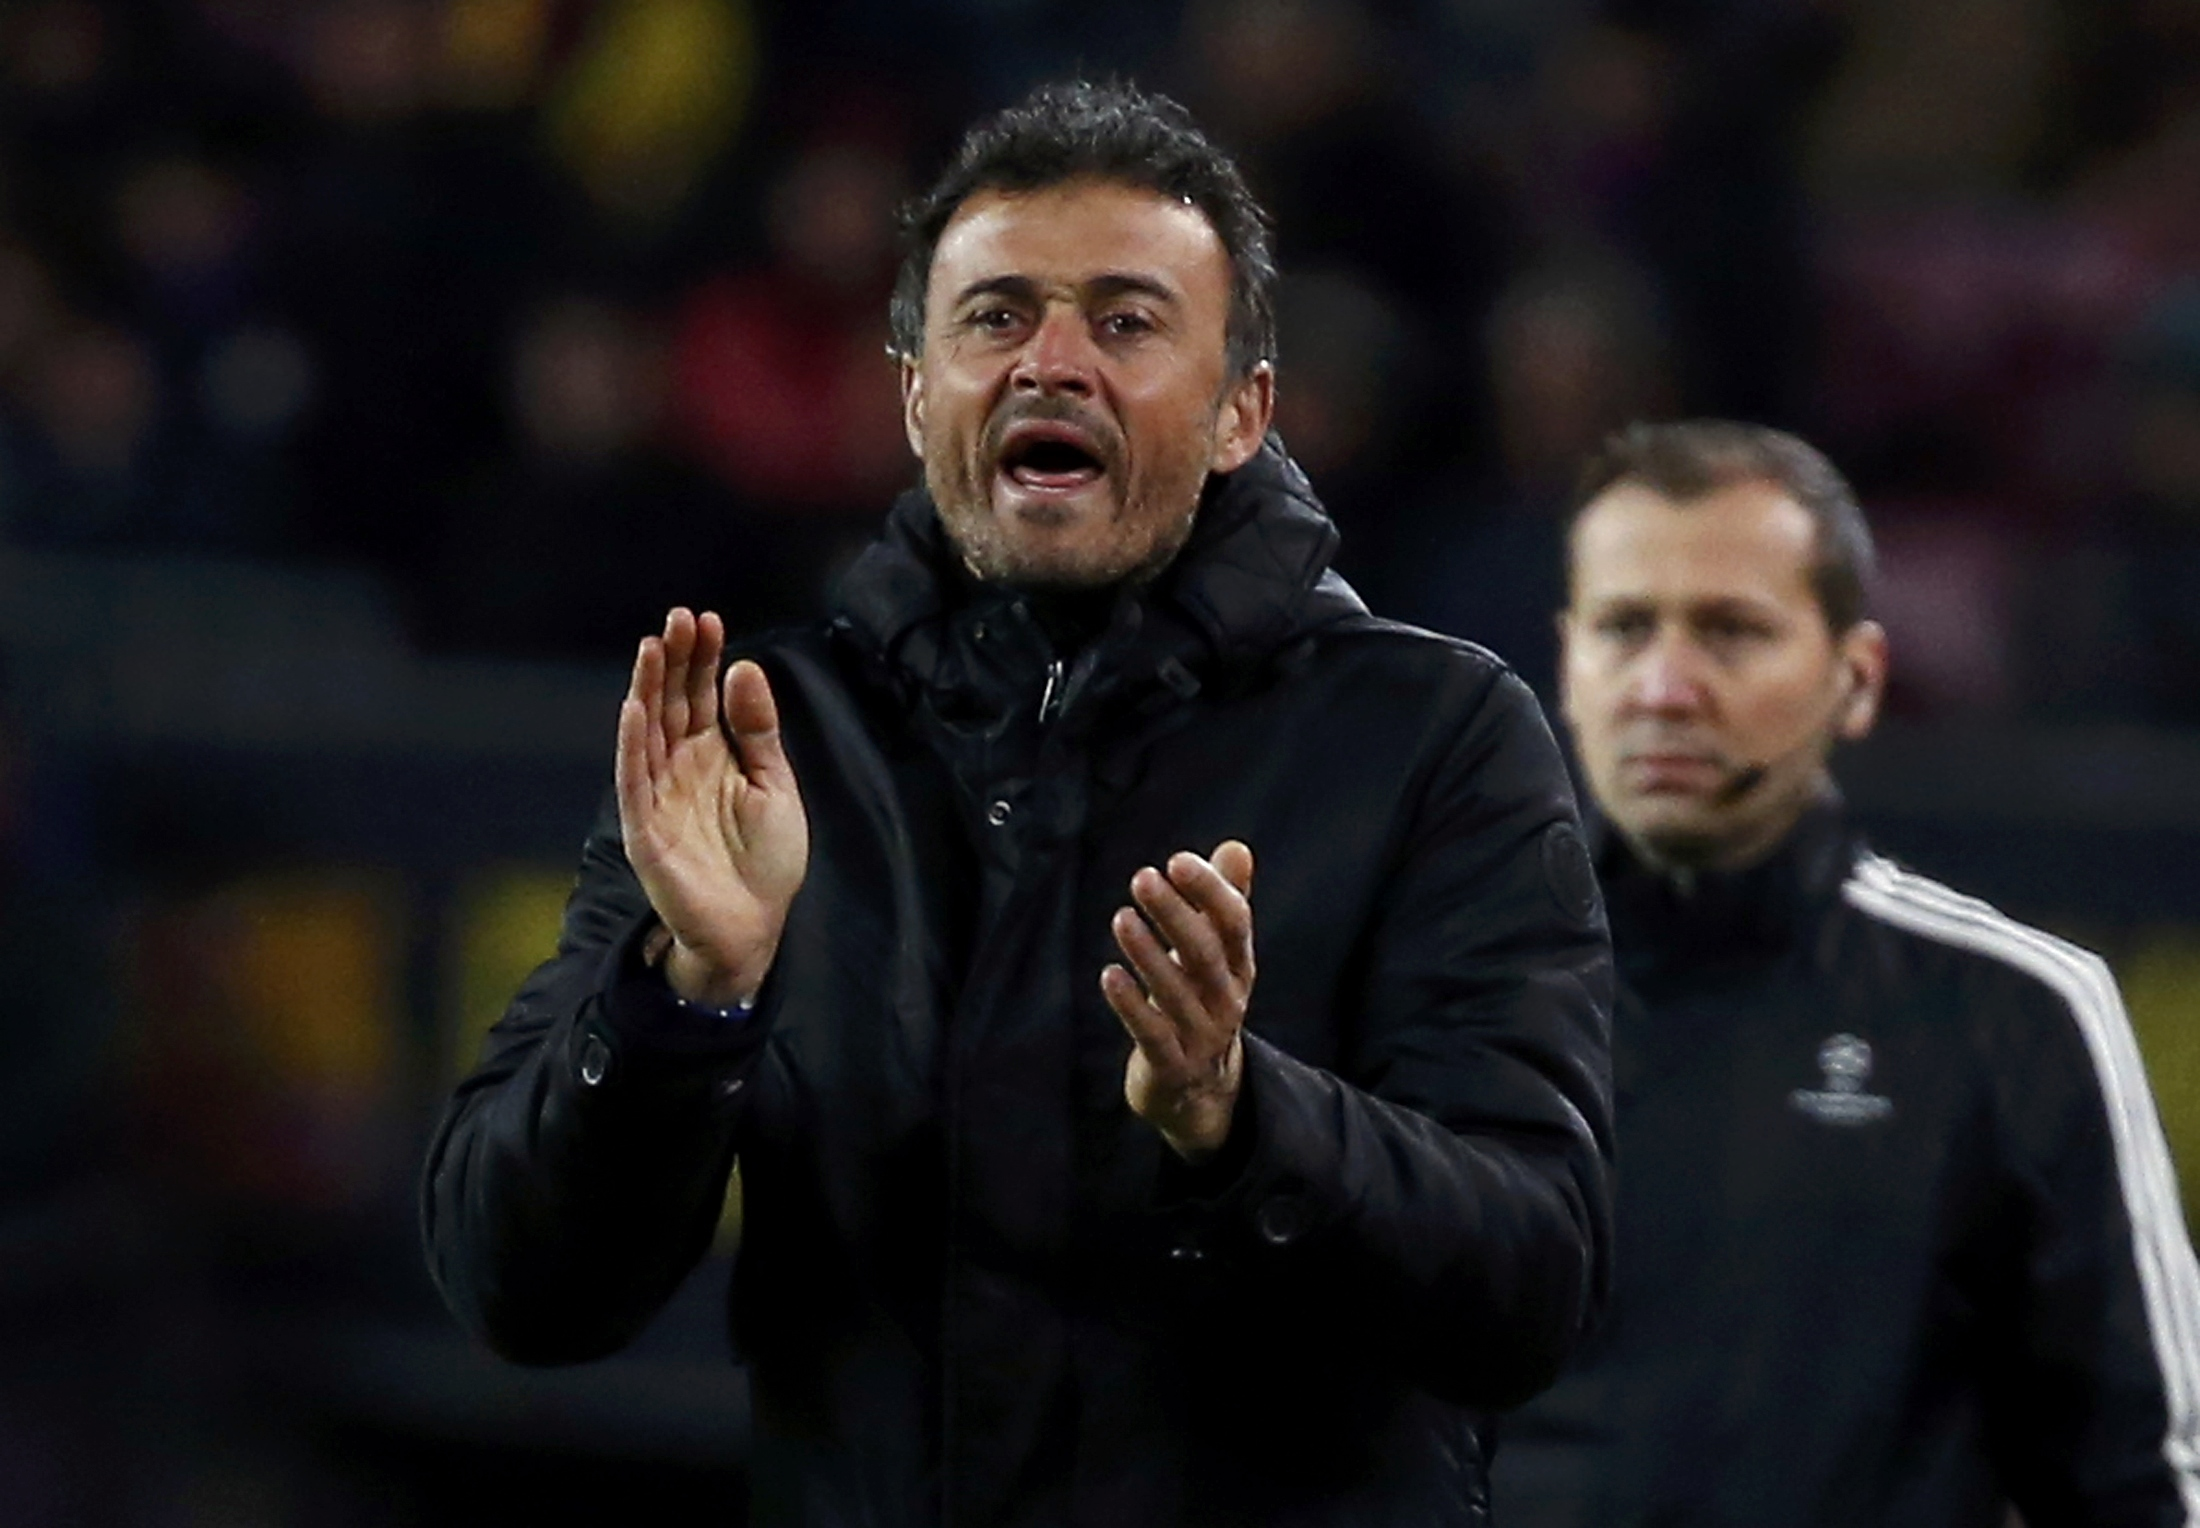 Football Soccer- Barcelona v AS Roma - UEFA Champions League Group Stage - Group E - Camp Nou, Barcelona, Spain - 24/11/15  Barcelona's coach Luis Enrique.   REUTERS/Paul Hanna